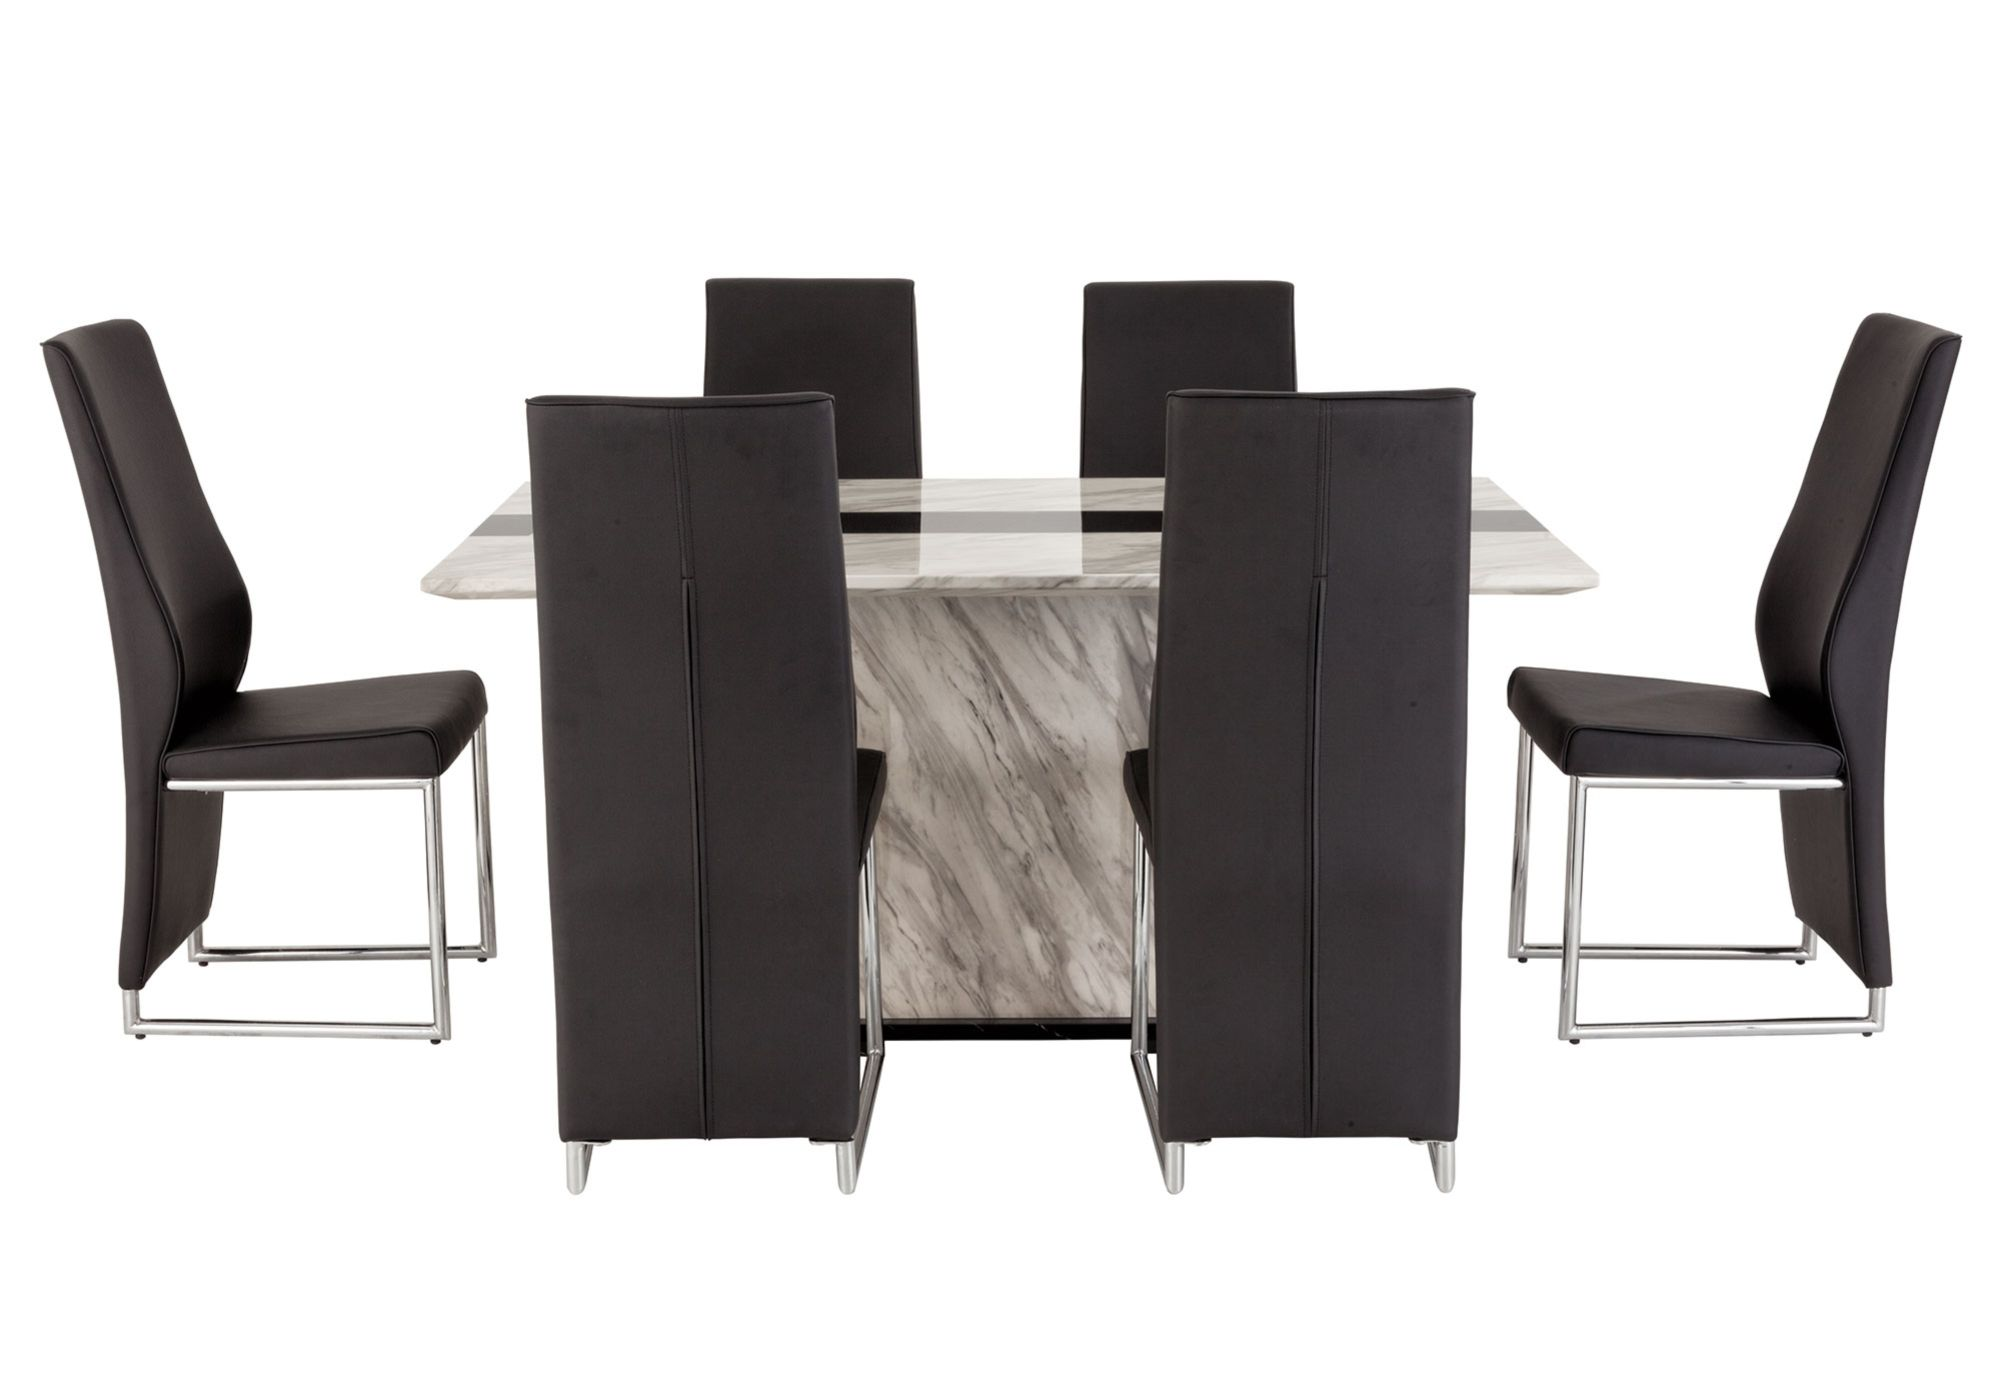 Furniture Village Dining Chairs mont blanc dining table & chairs at furniture village - mont blanc